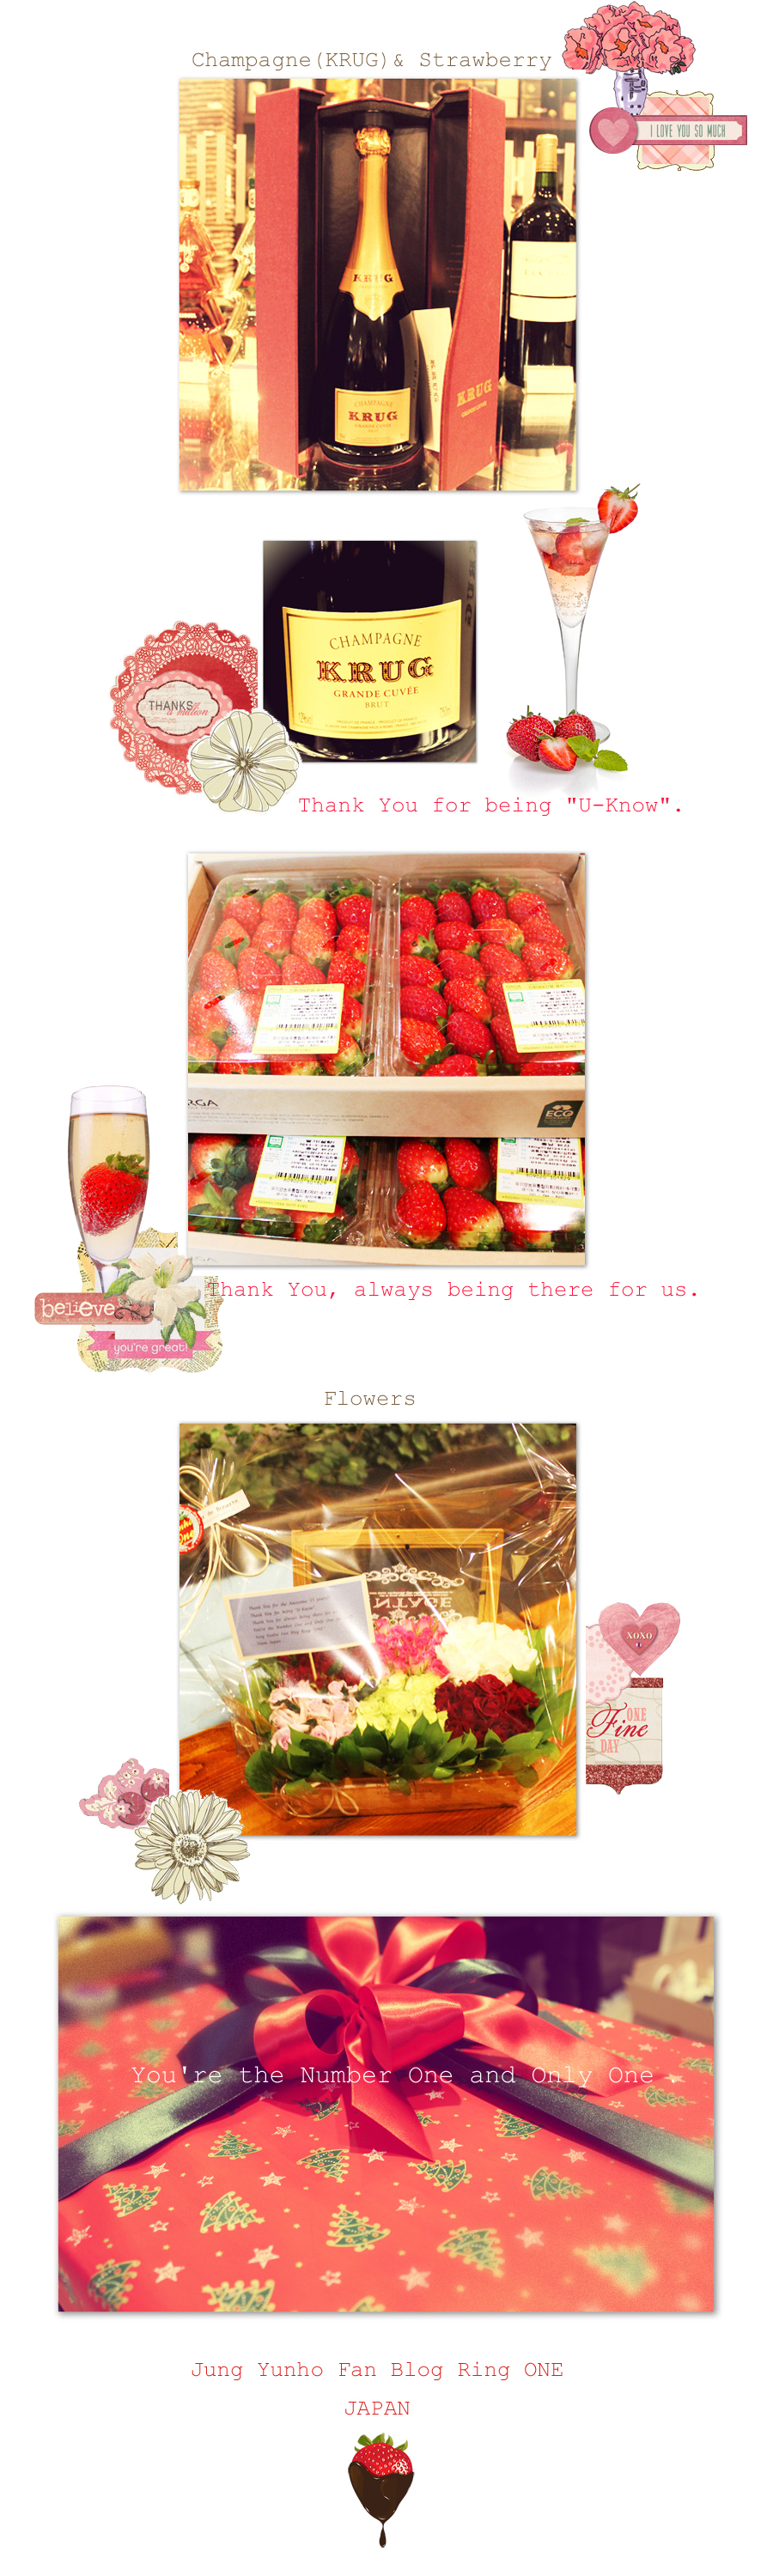 2014 ~ Fans Support & Gifts To Celebrate Yunho's 11th Debut